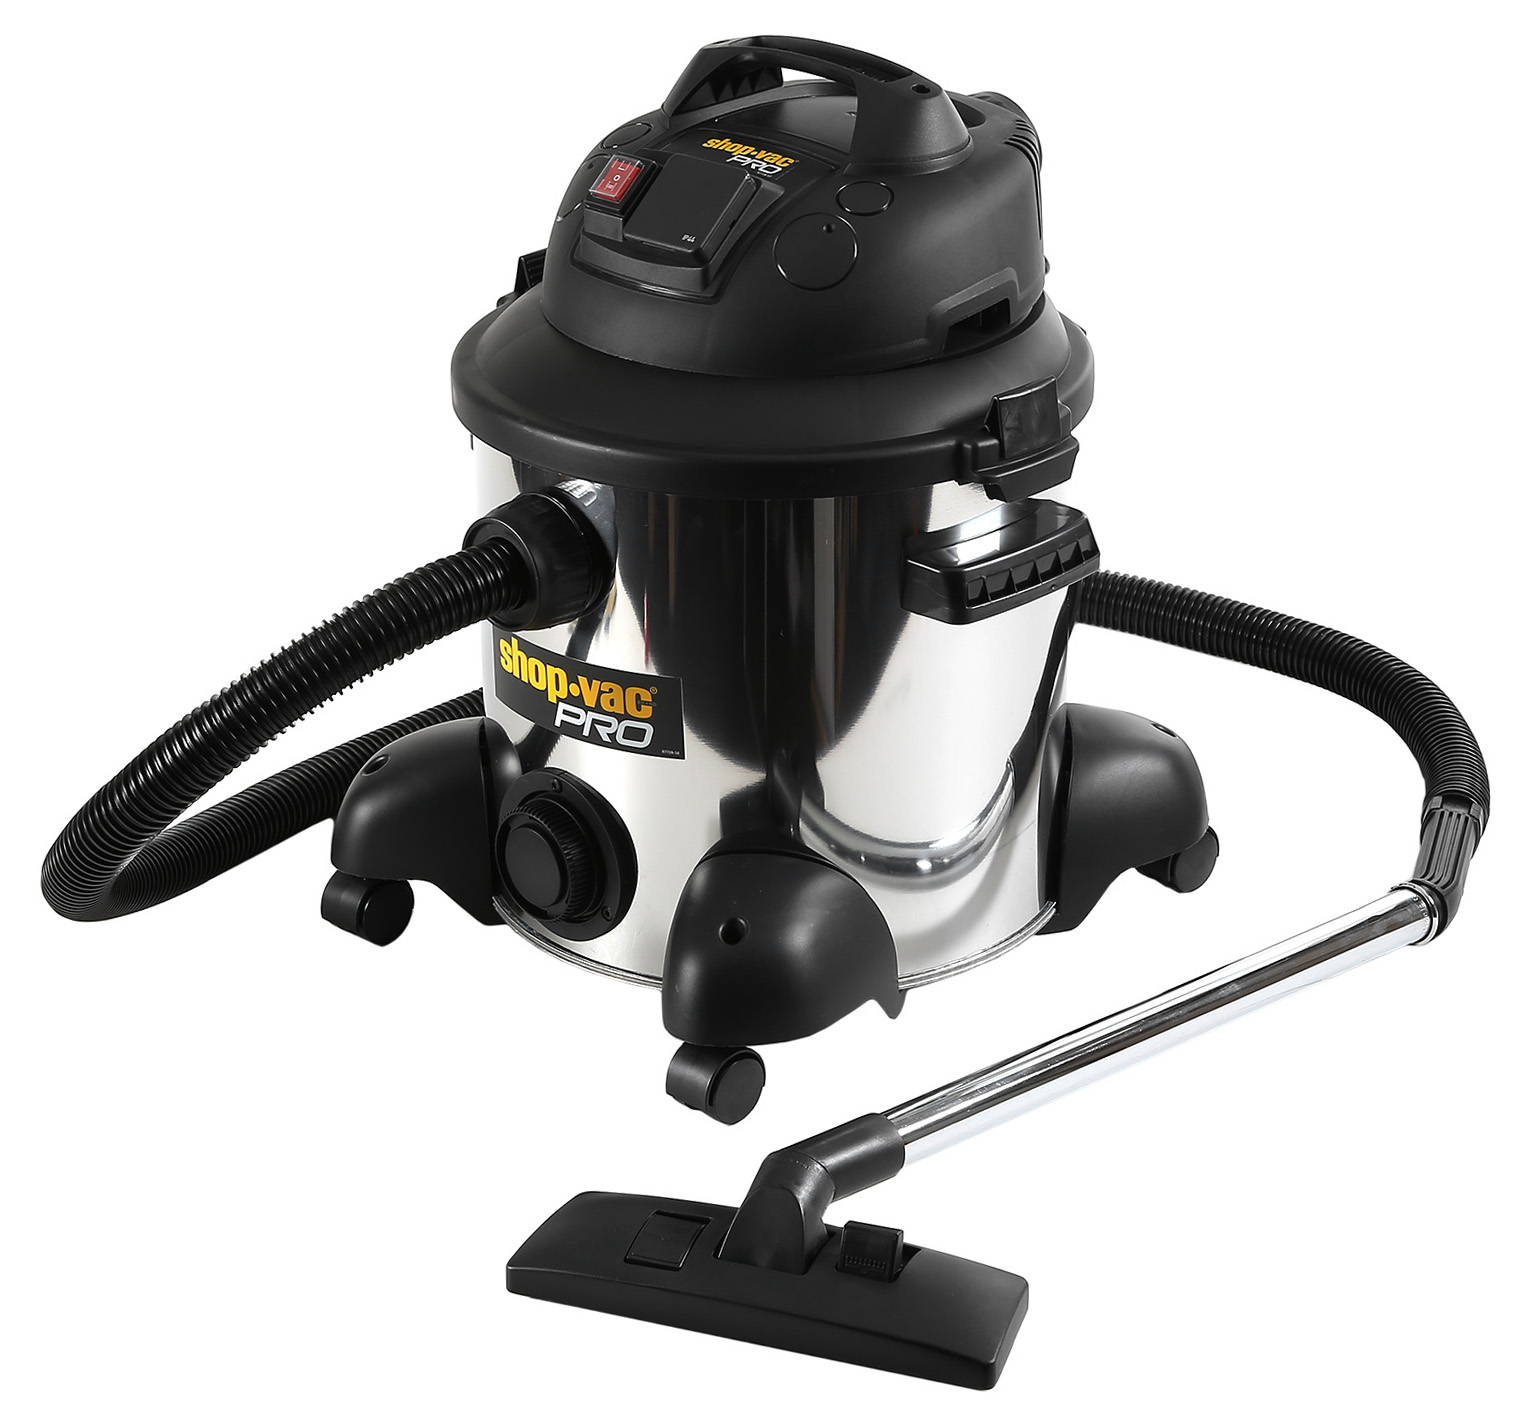 ������� Shop vac Pro 30-si deluxe